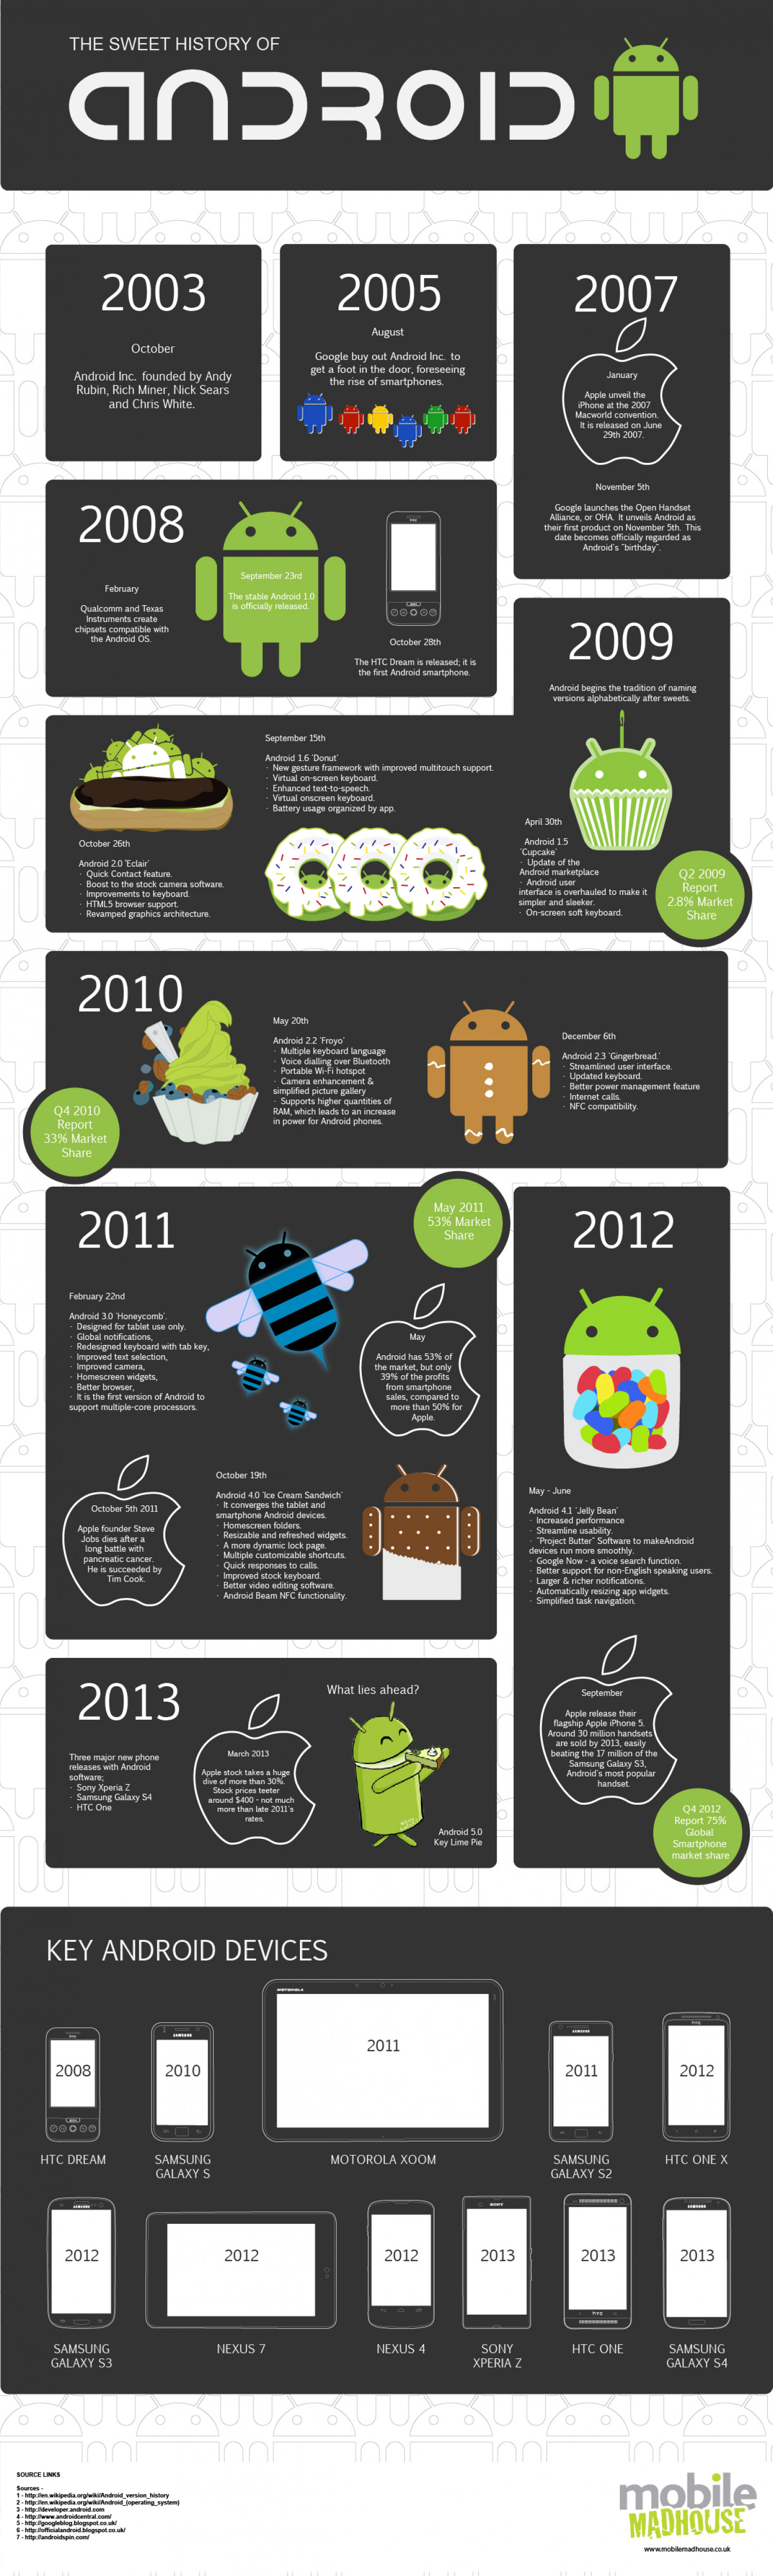 The Sweet History Of Android Infographic